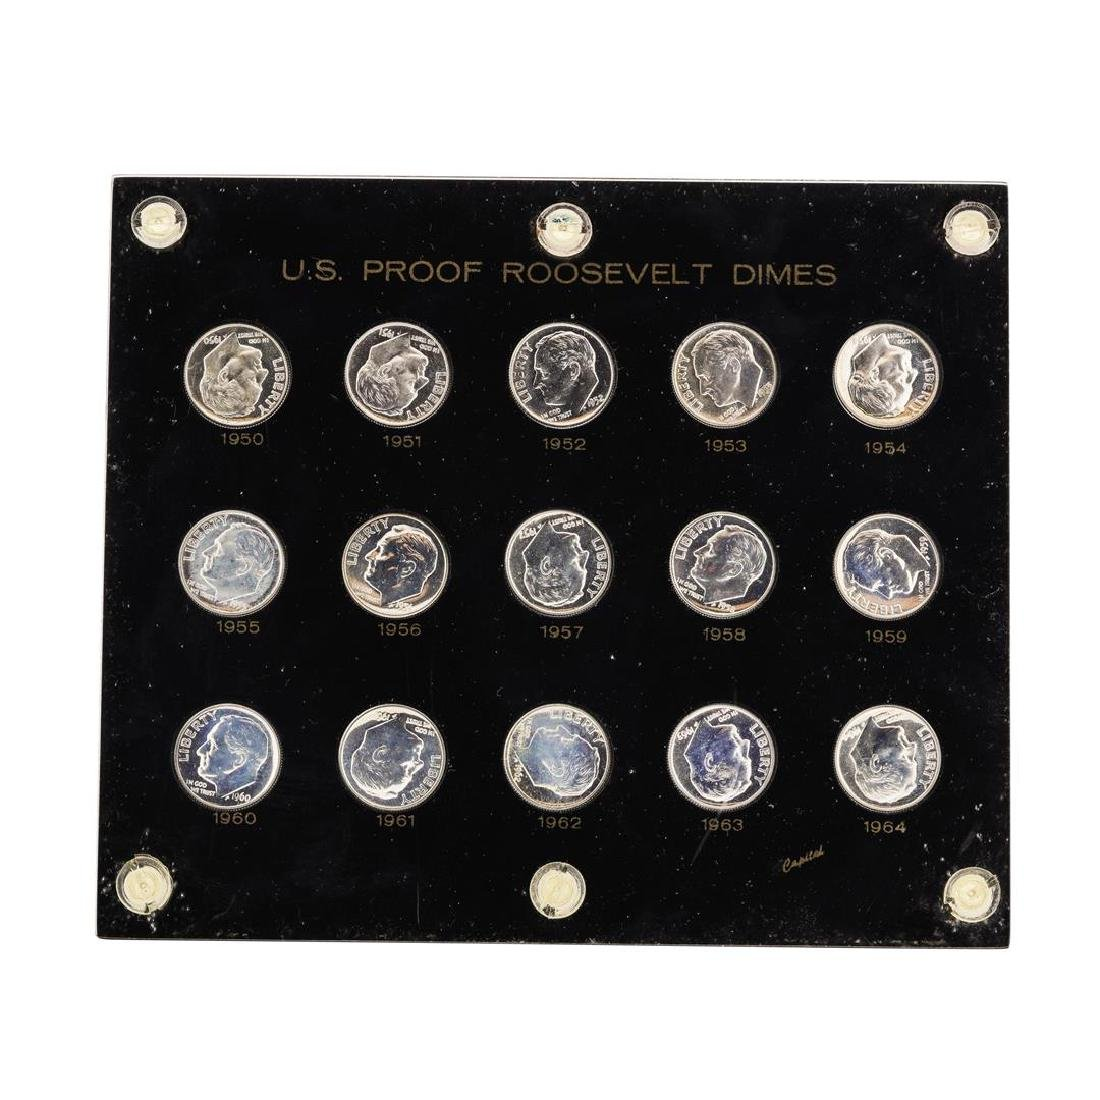 Roll of (50) 1950-1964 Proof Roosevelt Dimes